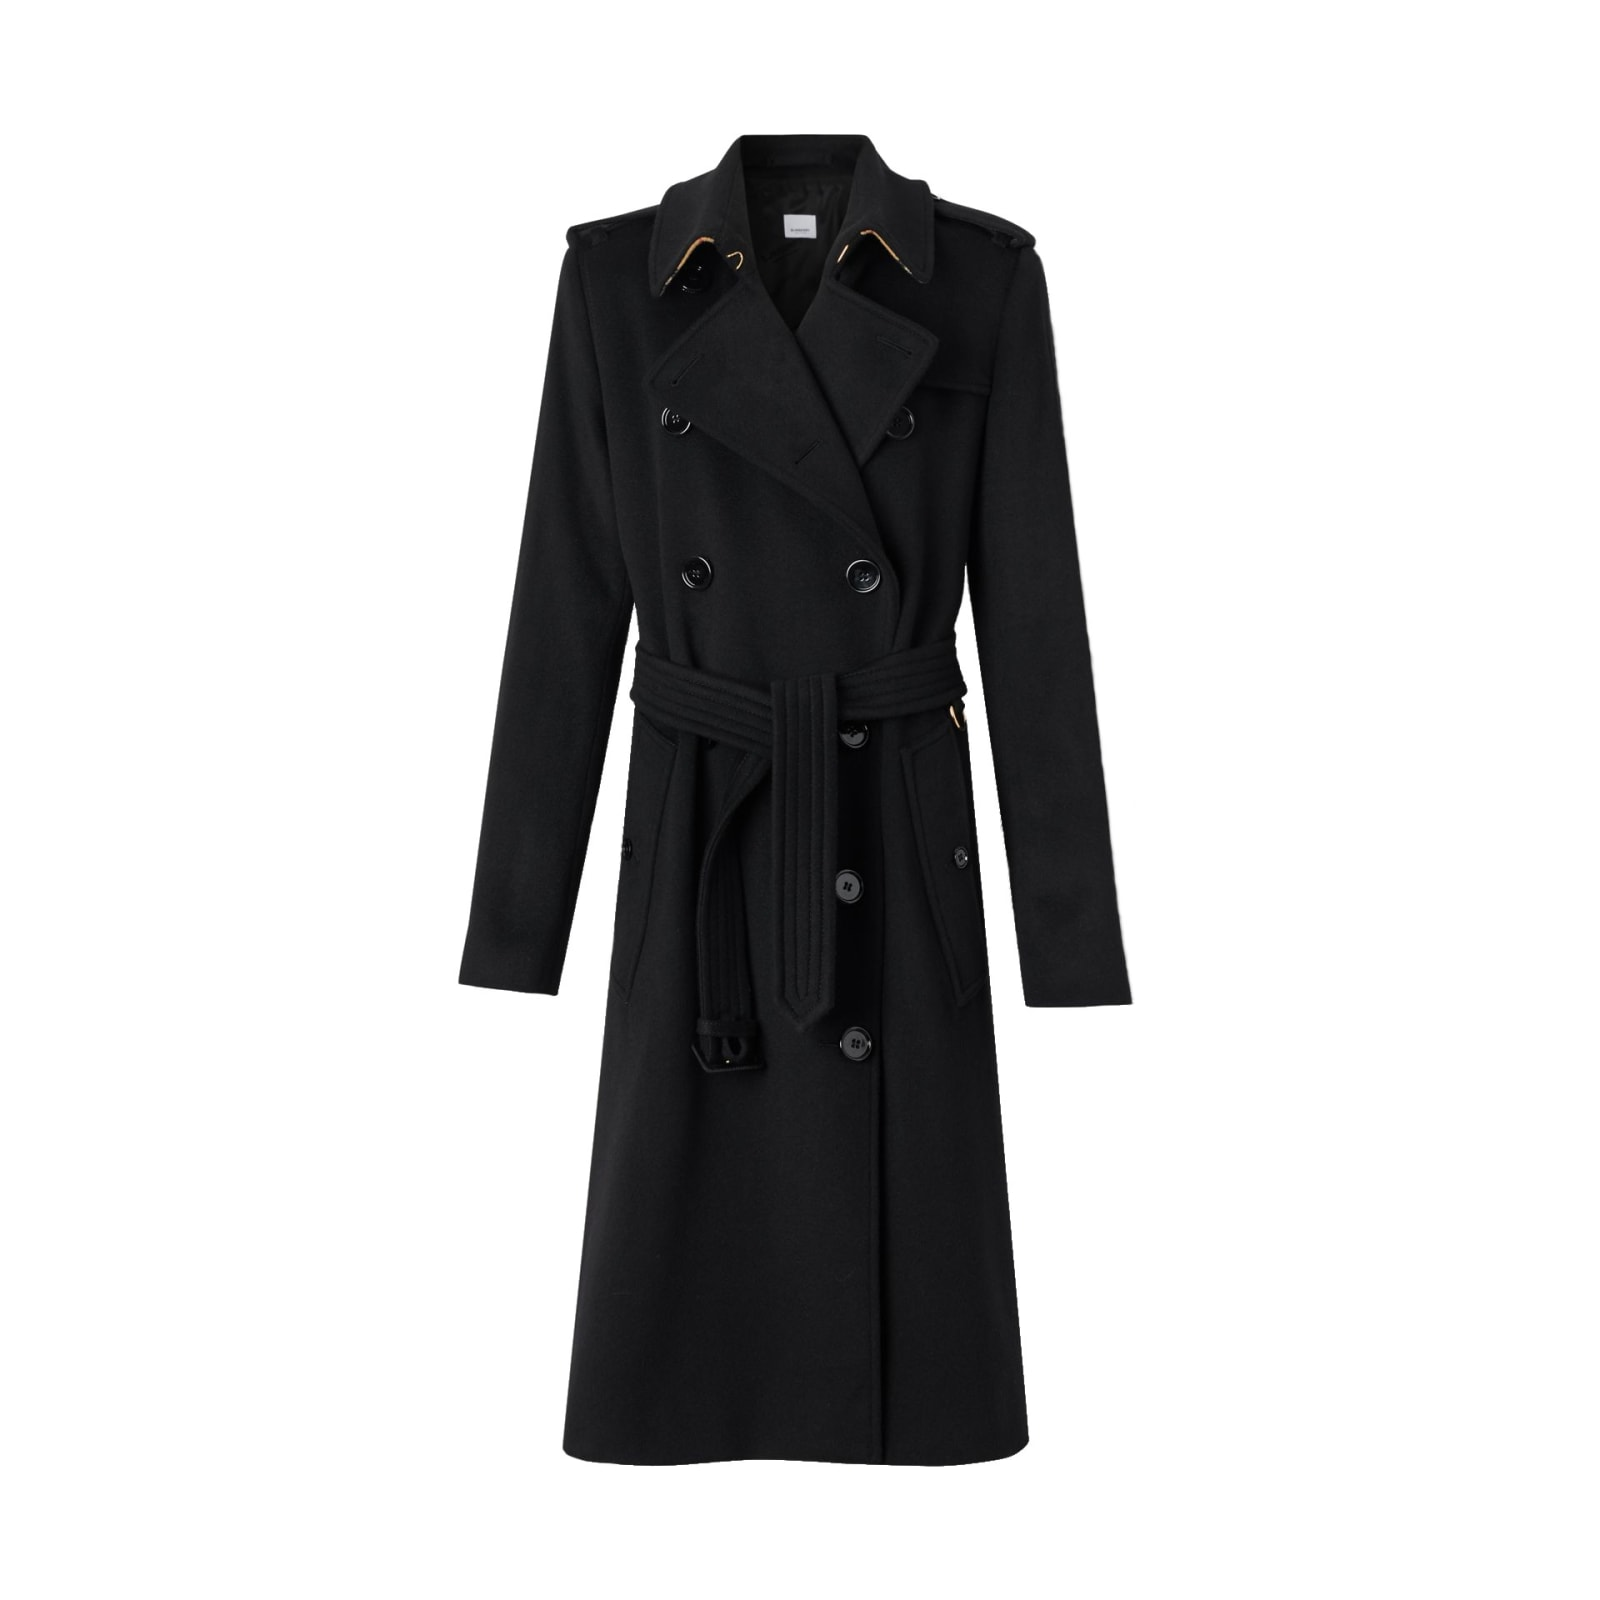 Burberry Kensington Belted Trench Coat/19 No Foto